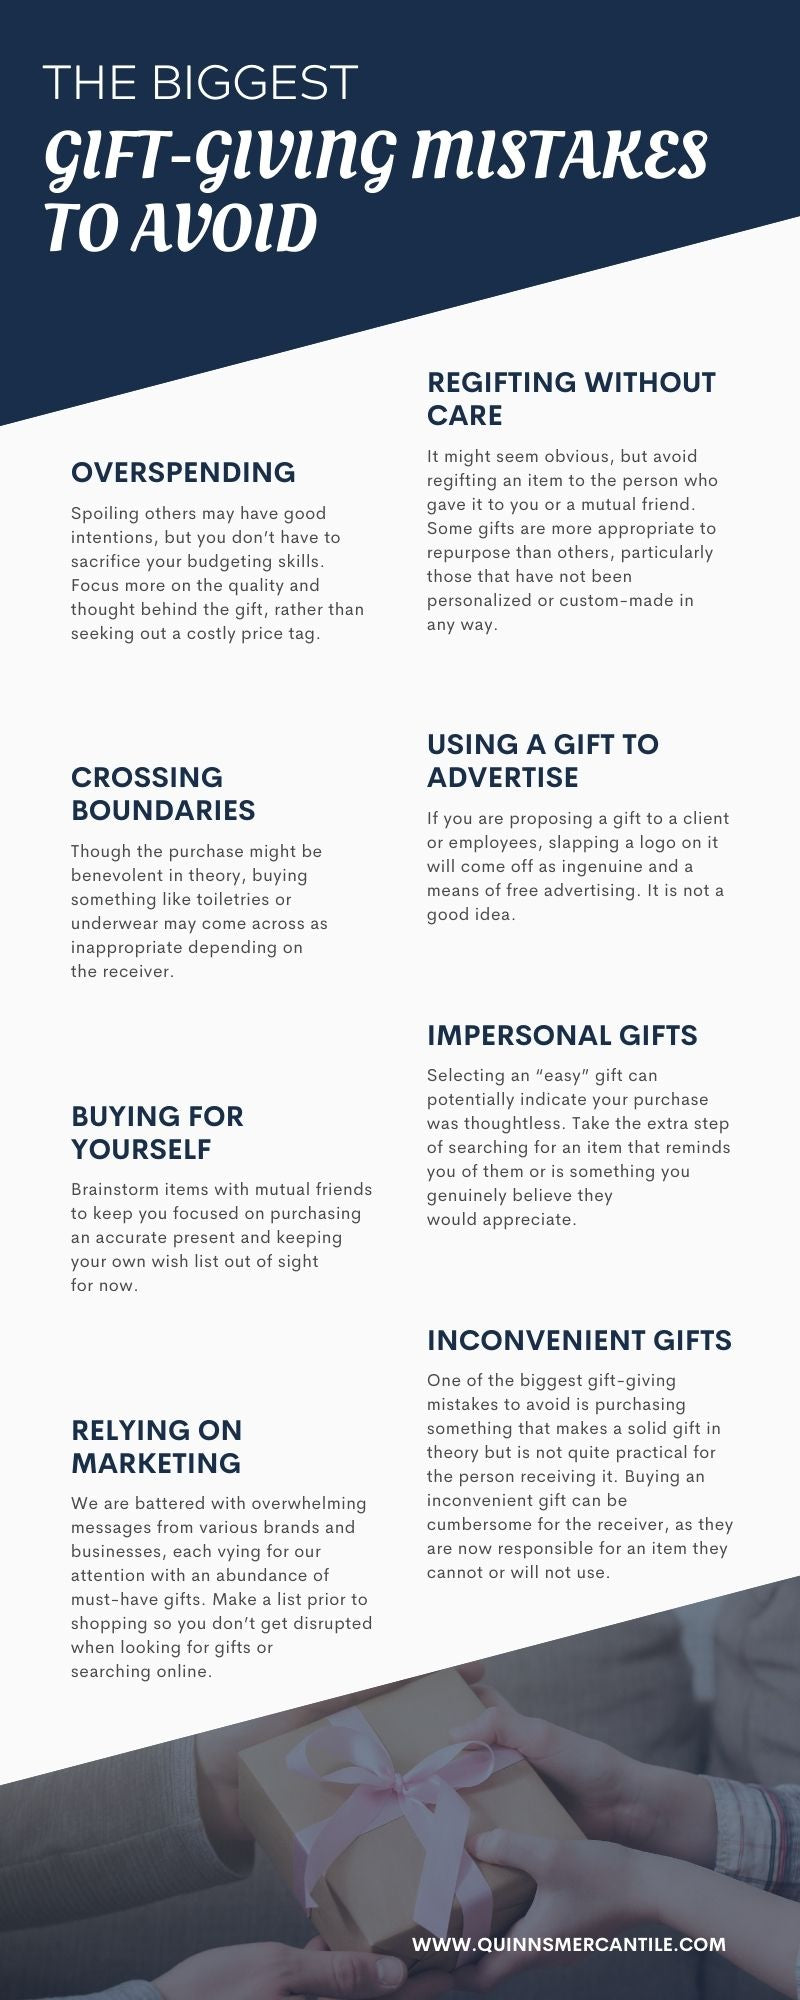 Gift-Giving Mistakes To Avoid